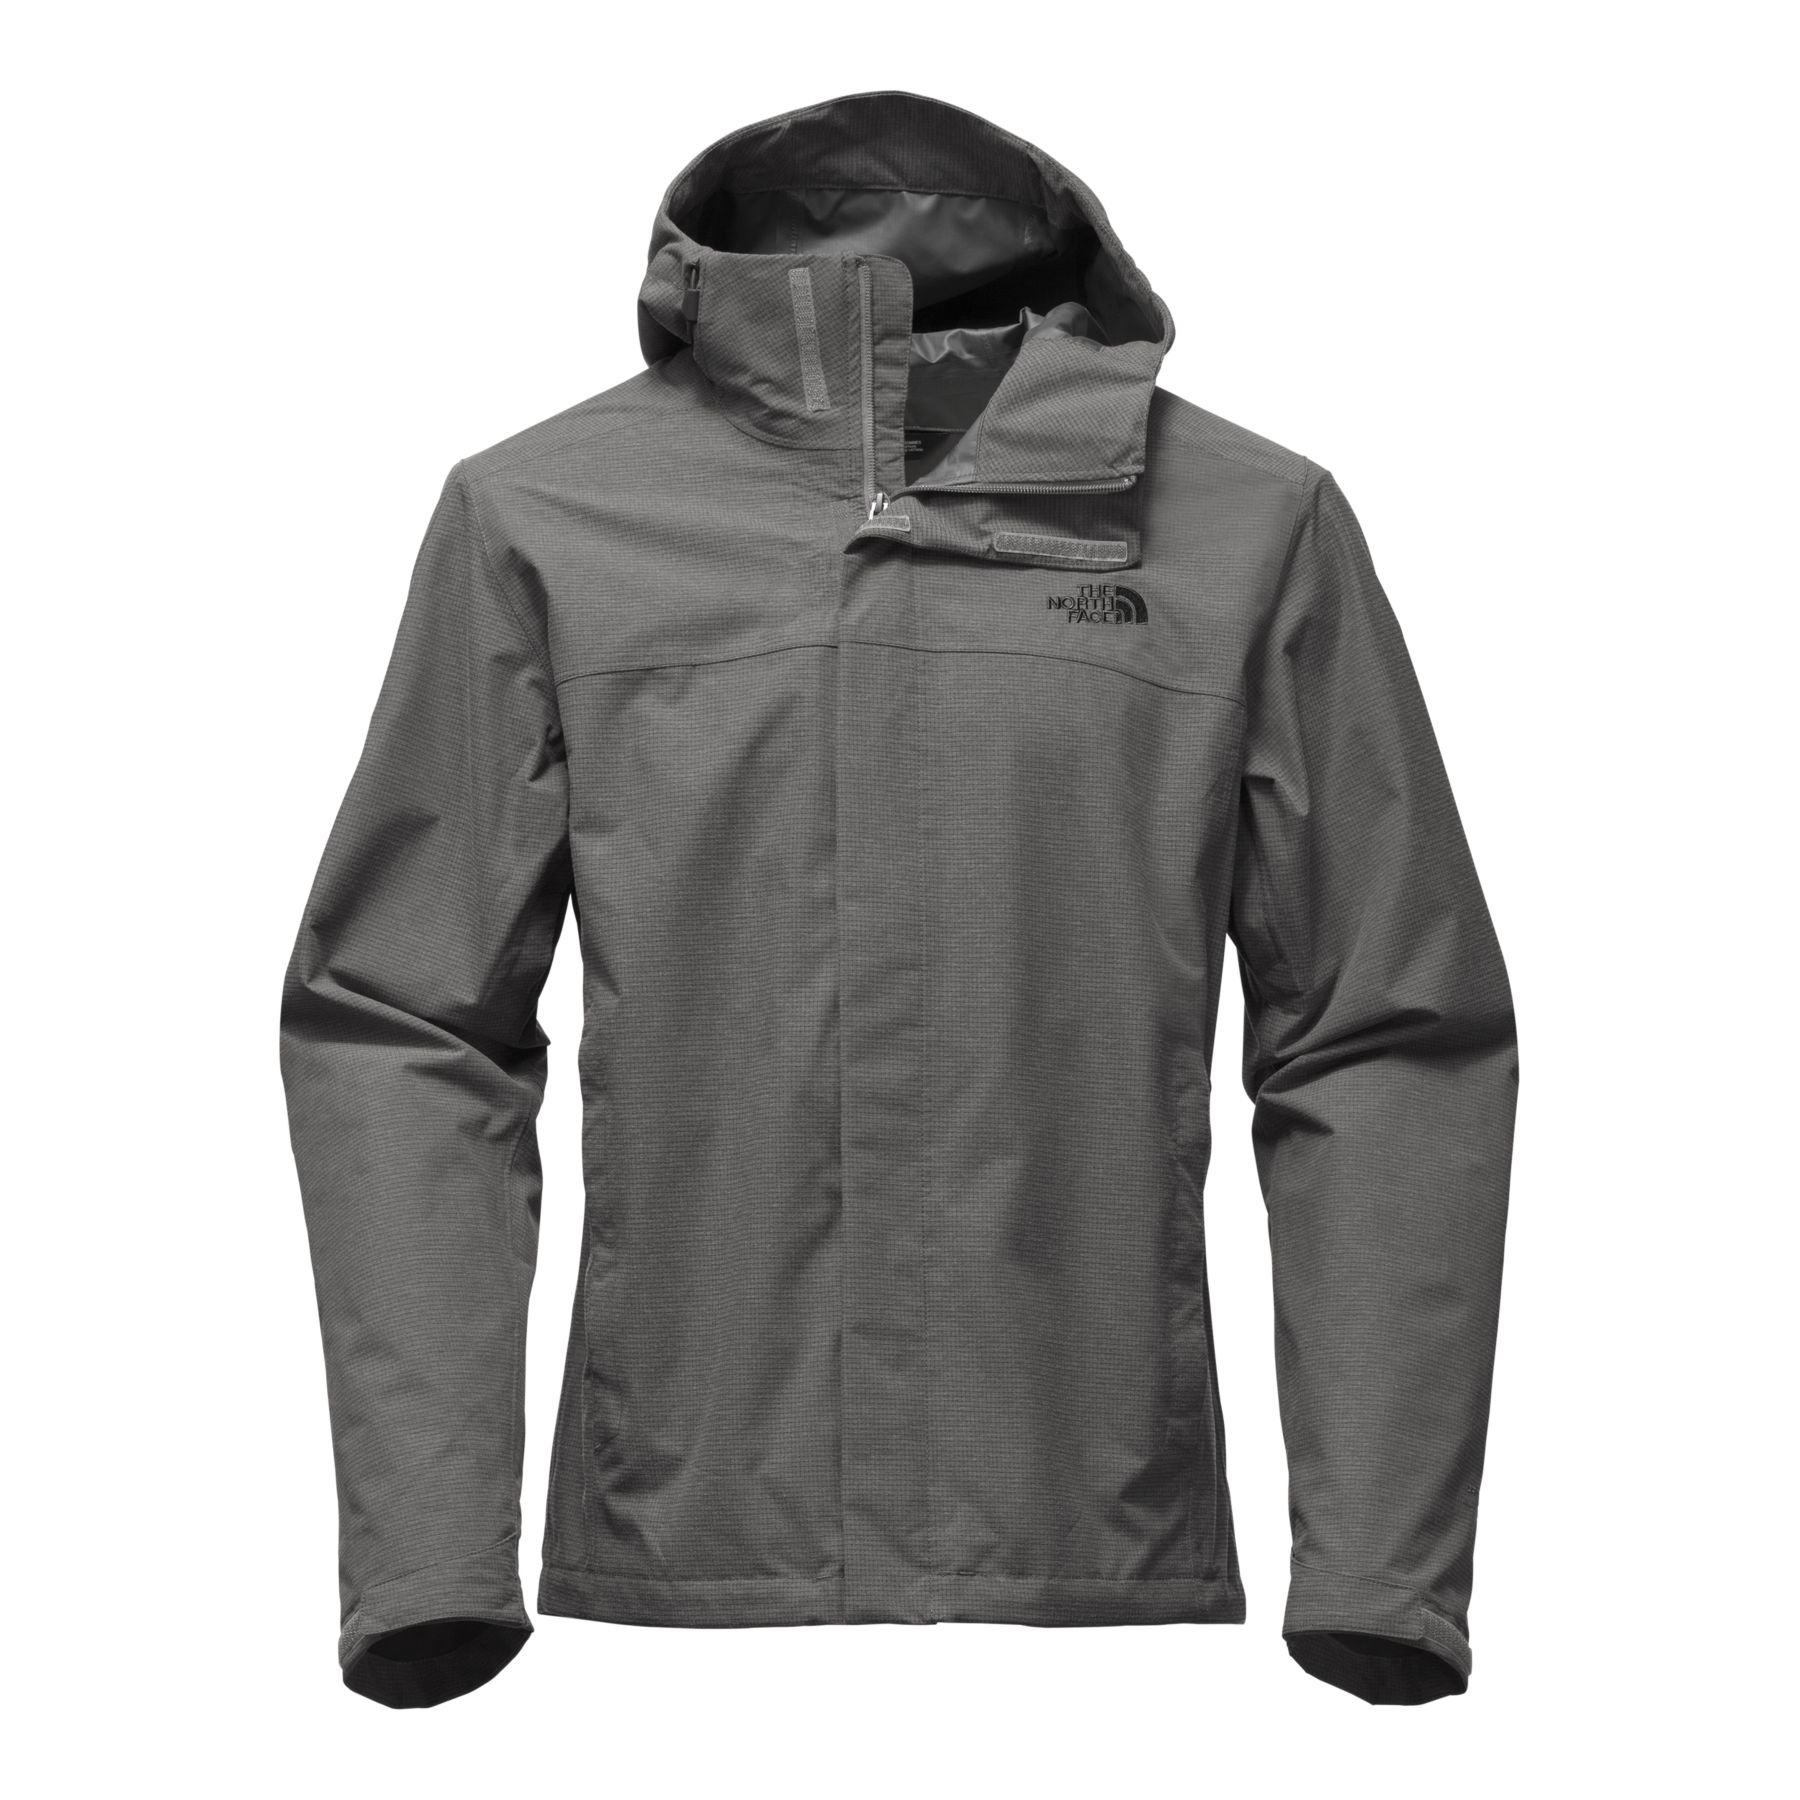 The North Face Men's Venture 2 Jacket - Mid Grey Ripstop Heather & Mid Grey Ripstop Heather - XL by The North Face